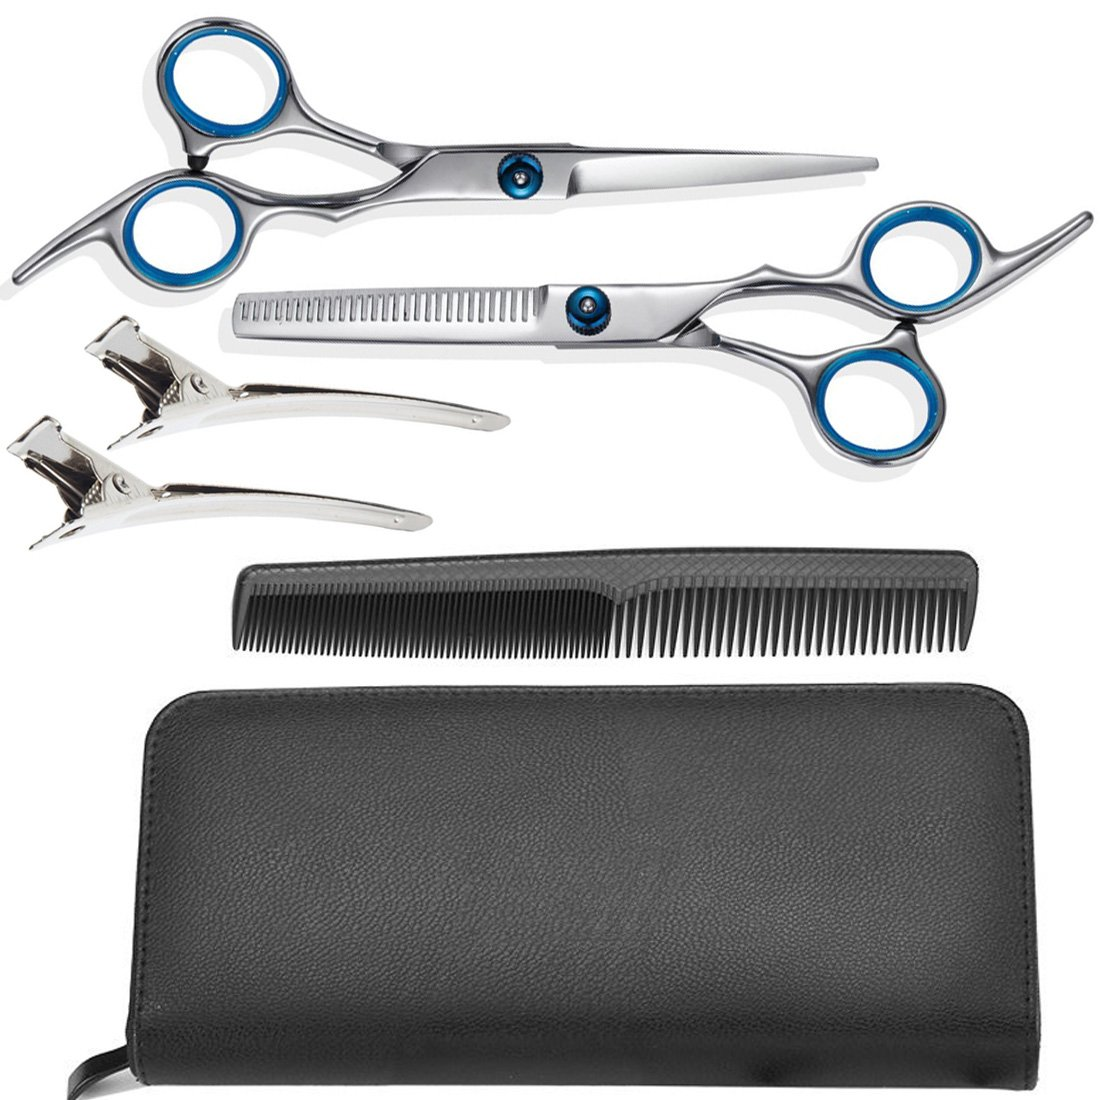 Hair Scissors Set, Professional Stainless Steel Barber Hair Cutting Shears, Razor Edge Scissors with Adjustment Screw, Thinning Texturizing Scissors with Clips, Cleaning Cloth, Comb, Leather Case